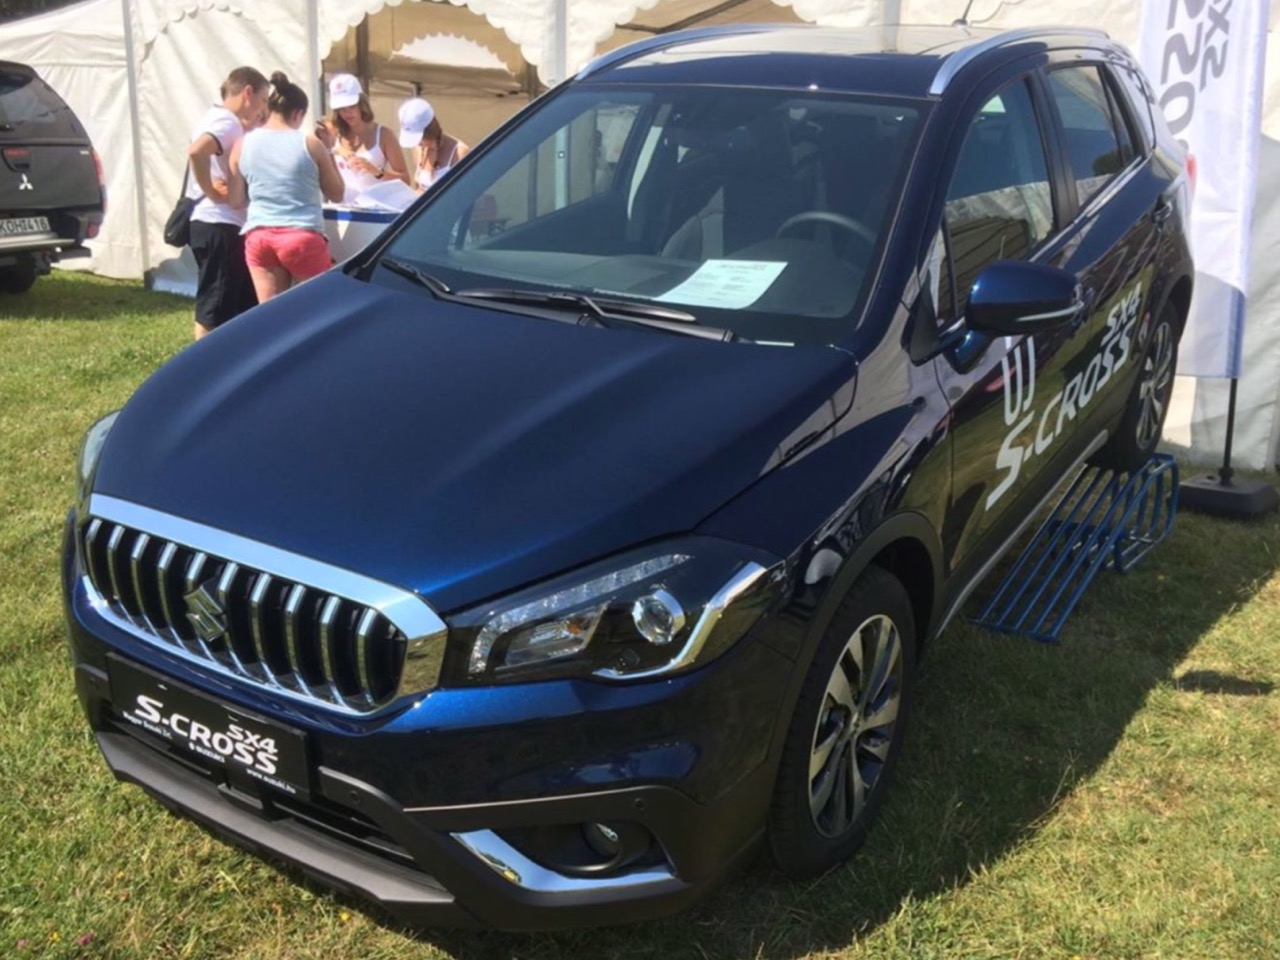 suzuki hungary reveals sx4 s cross facelift with 1 4 turbo. Black Bedroom Furniture Sets. Home Design Ideas